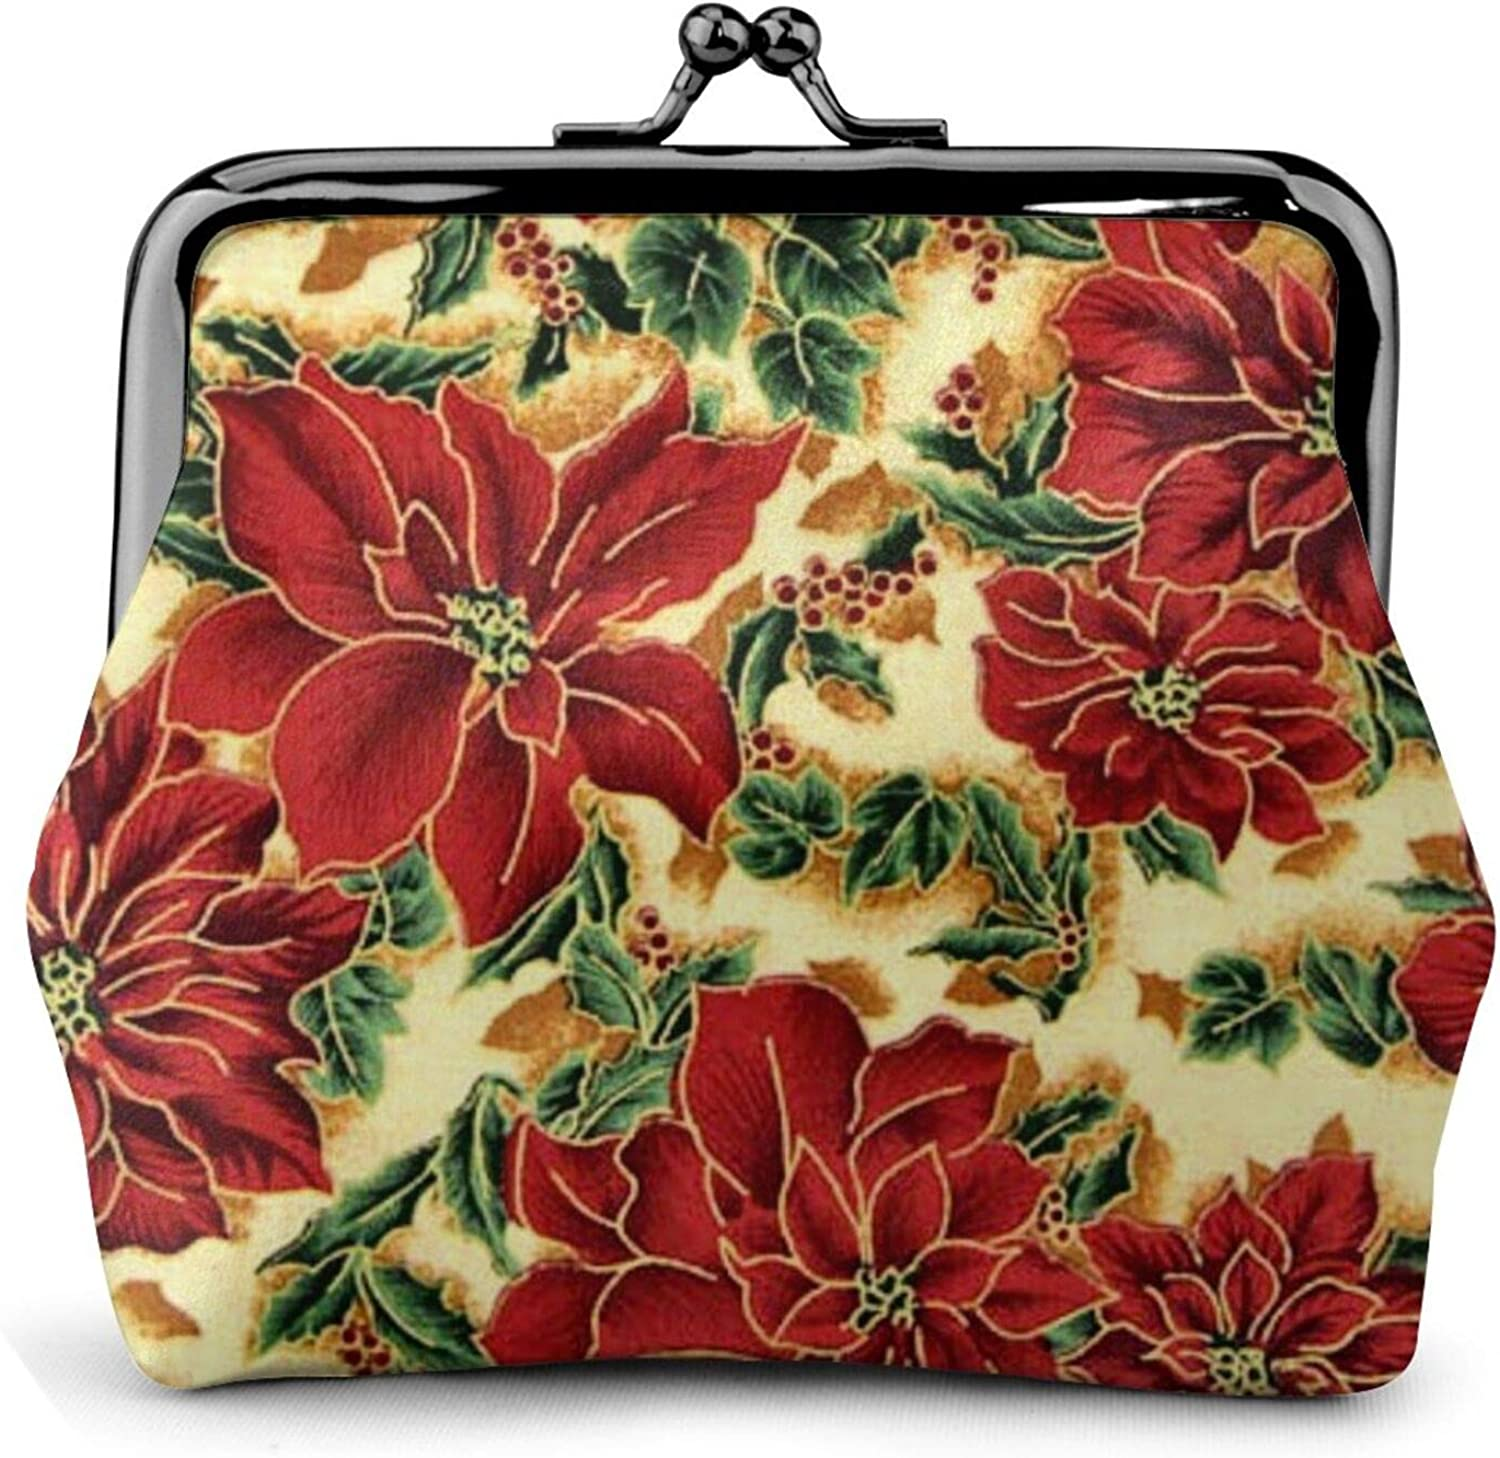 christmas floral pattern Buckle Coin Purses Women's Kiss-lock Closure Mini Vintage Pouch Leather Hasp Makeup Wallets Card Holder Cute for Men Women Girls Bags